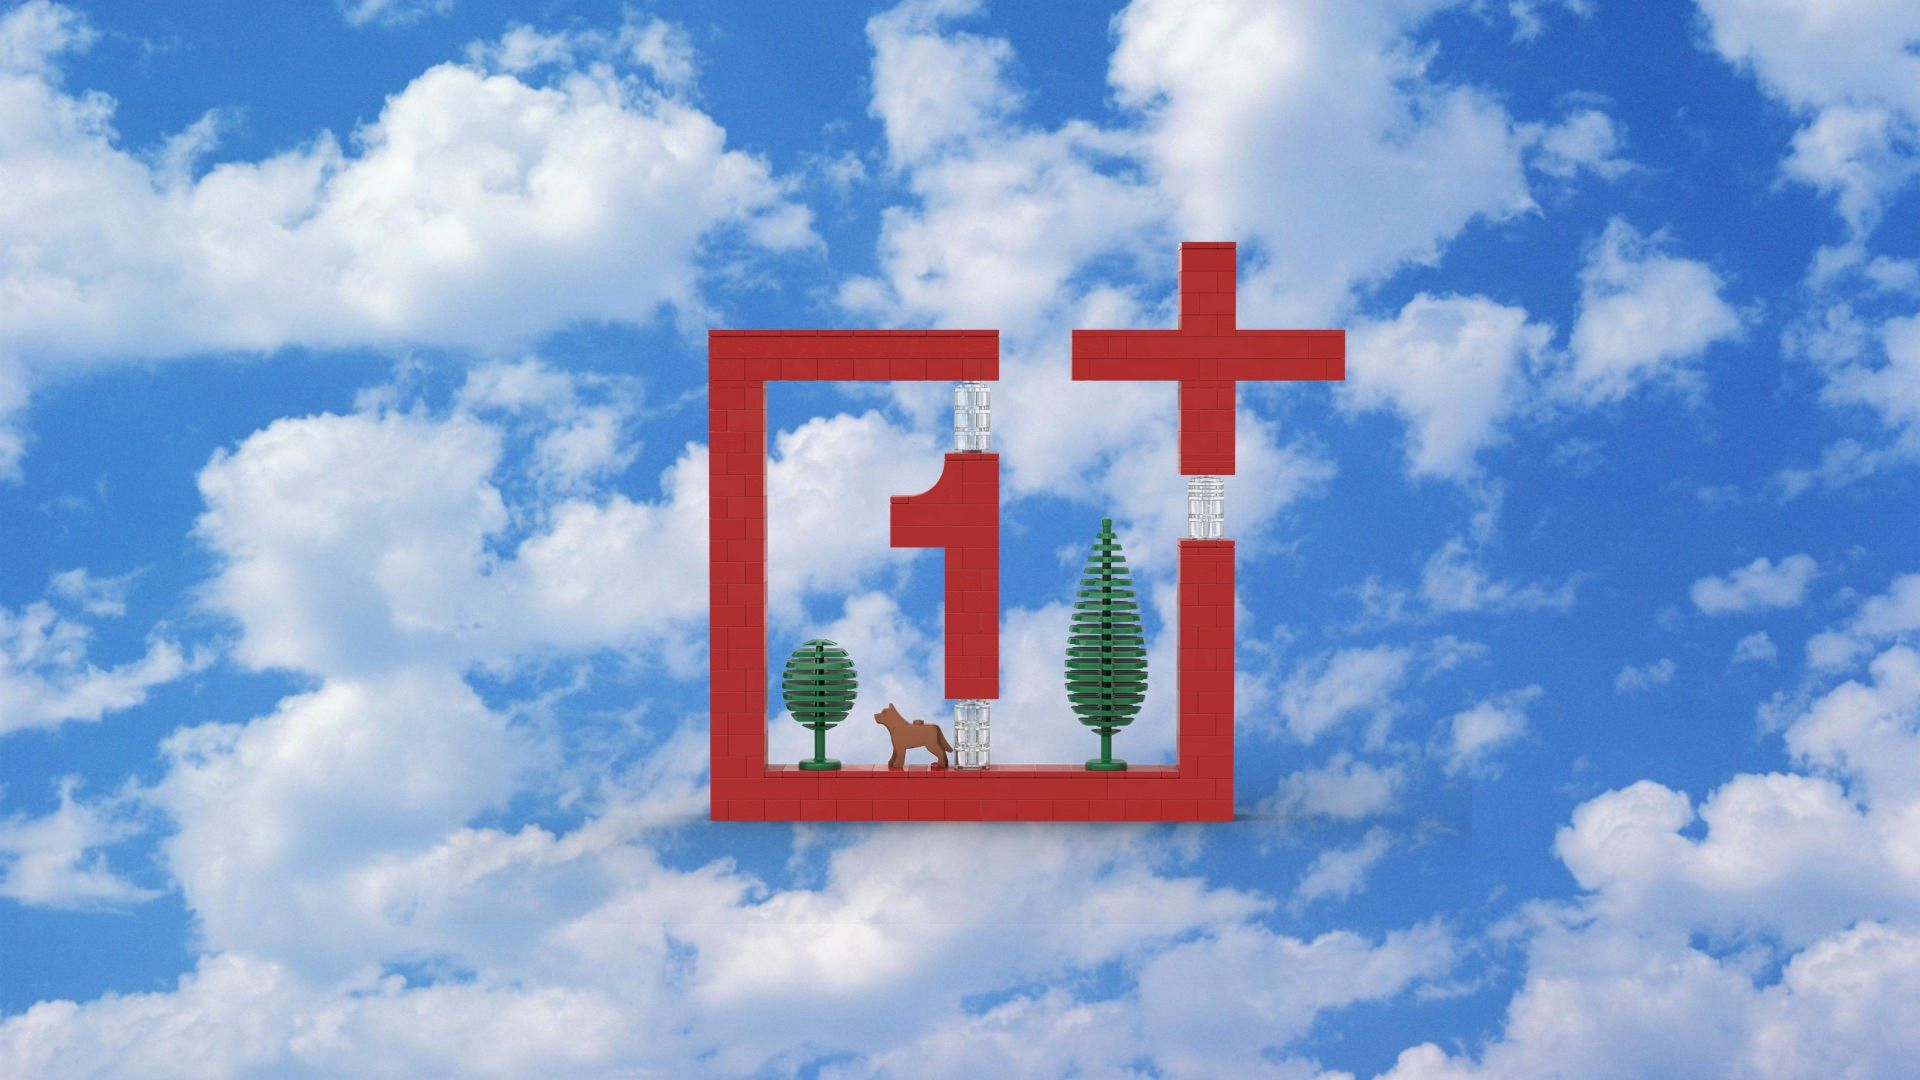 Lego OnePlus Red-Clouds.jpg